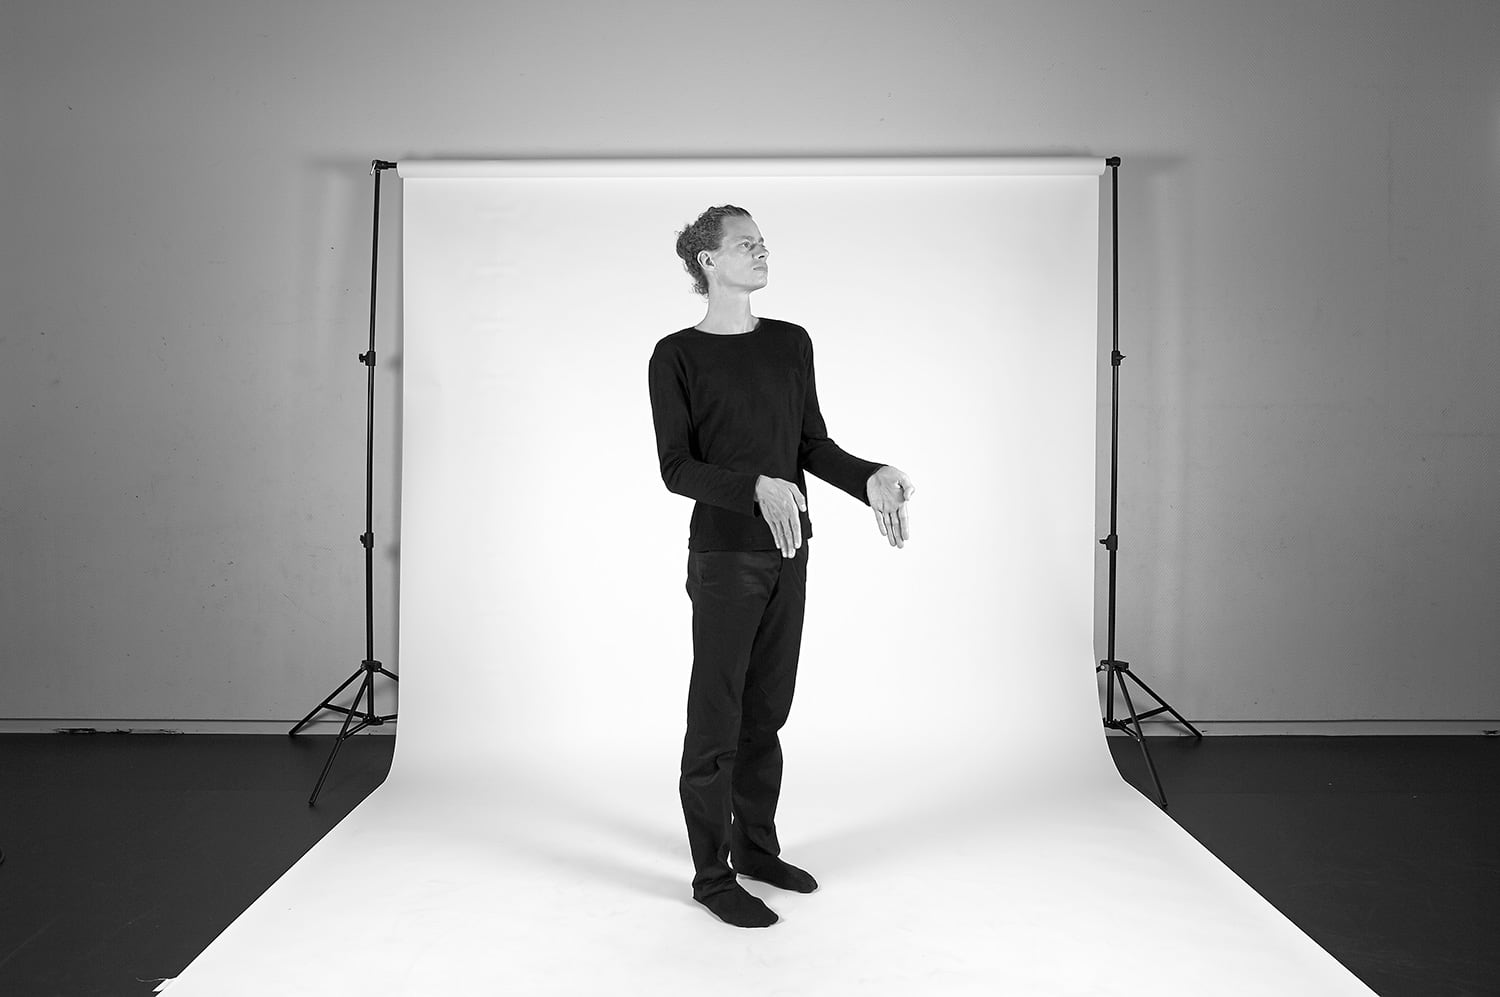 Nicolas Cantillon en répétition, Studio de danse du Grütli, photo: Nicolas Robel